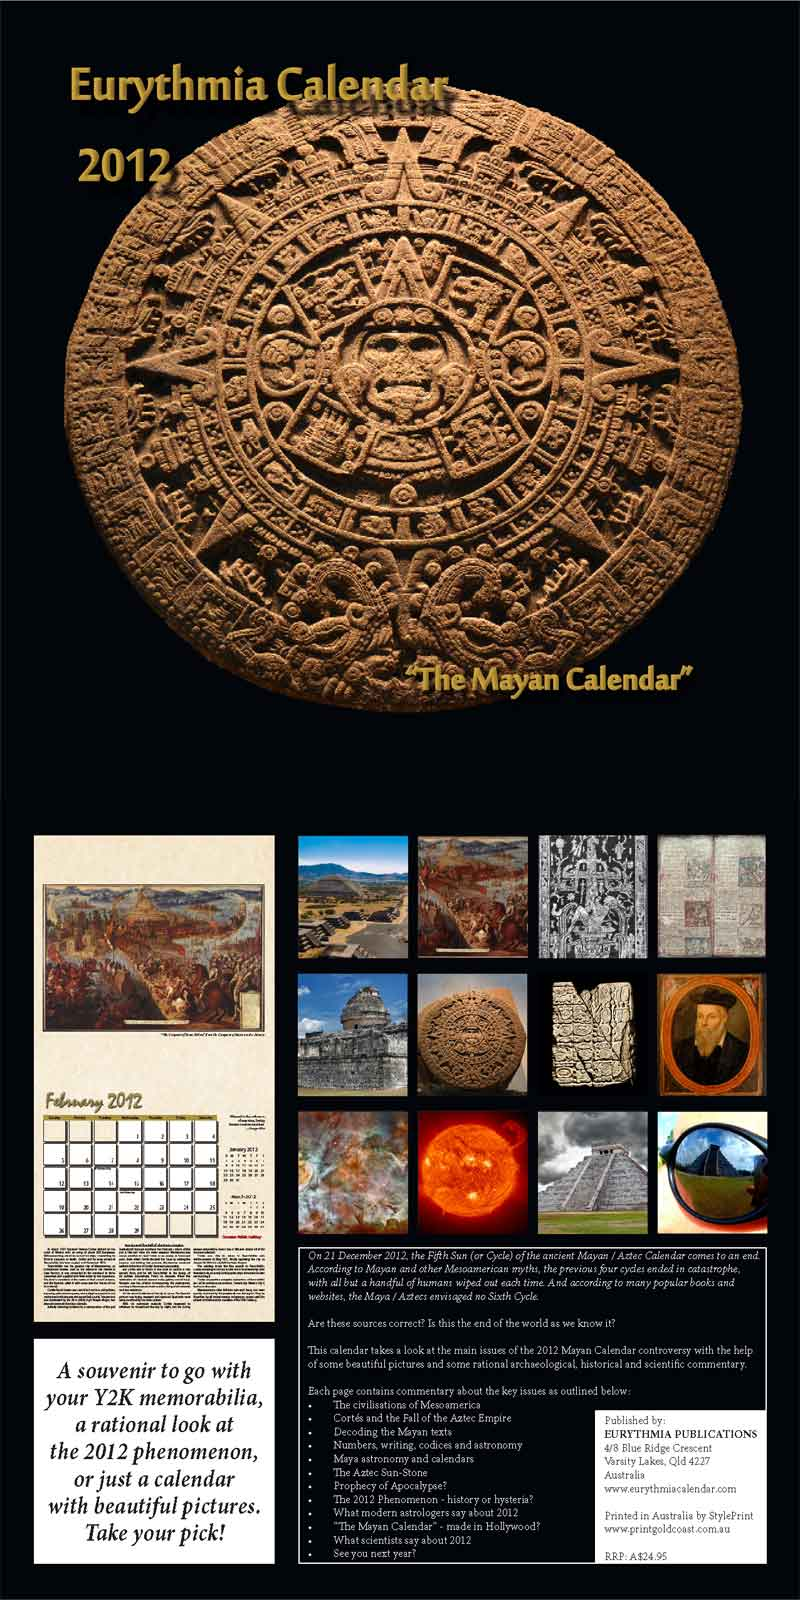 2012 Eurythmia Calendar Cover spread